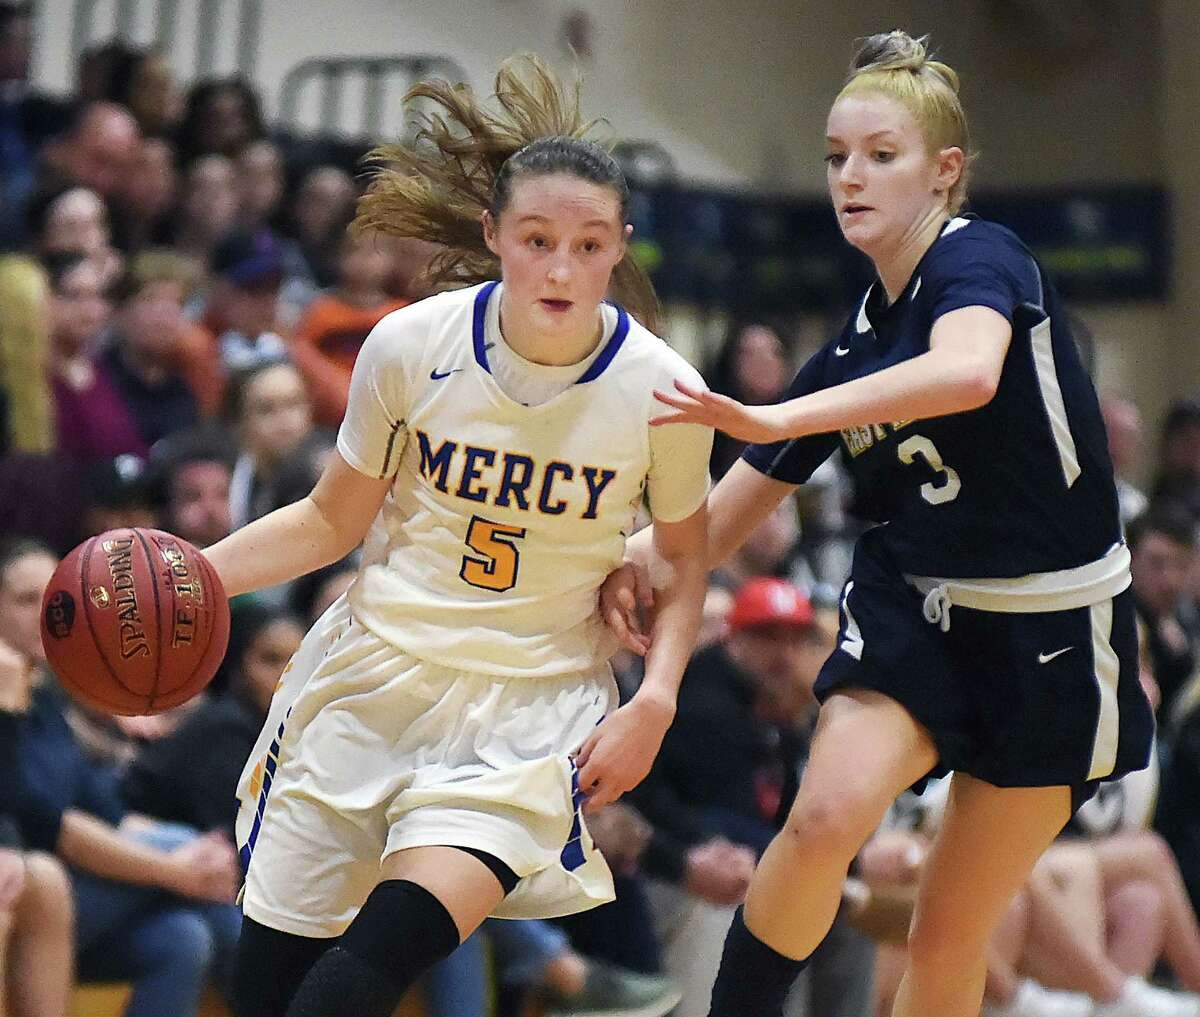 Mercy's Bella Santoro drives to the paint as East Haven's McKenzie Helms defends Wednesday, Feb. 21, 2018, in the SCC championship game at East Haven High School. Mercy won, 64-40.